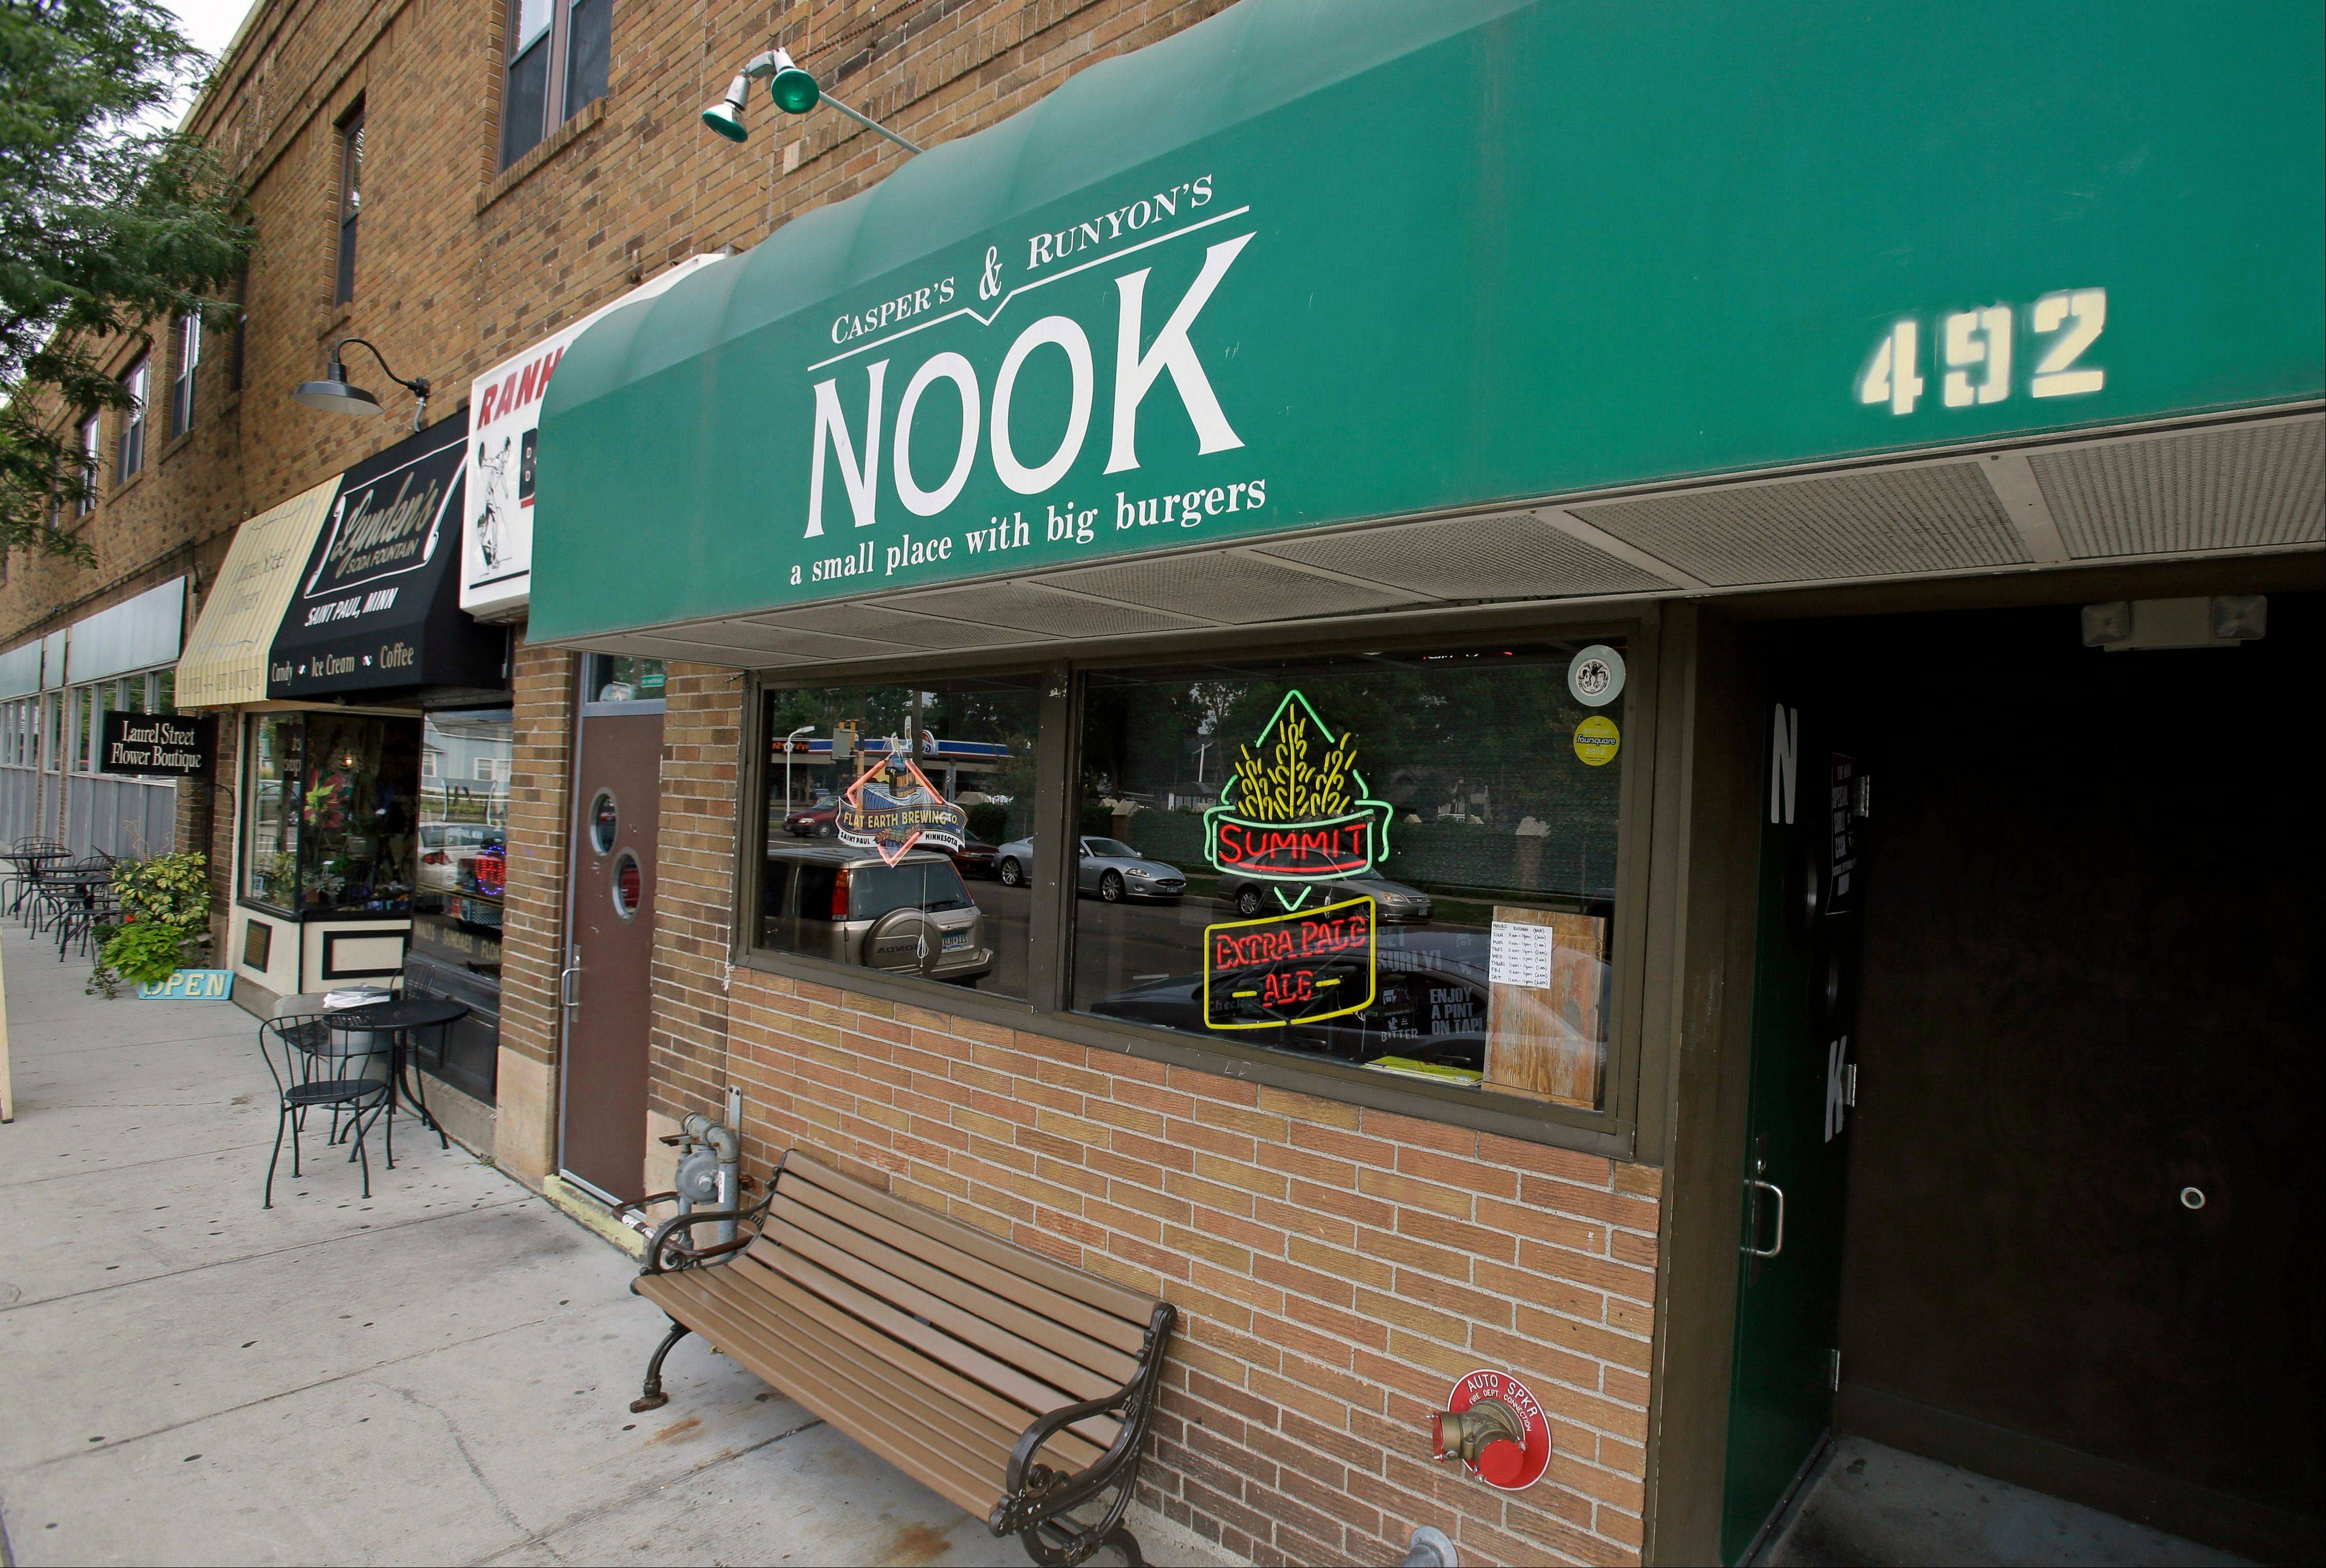 The Noo is a popular burger joint in residential St. Paul, Minn.